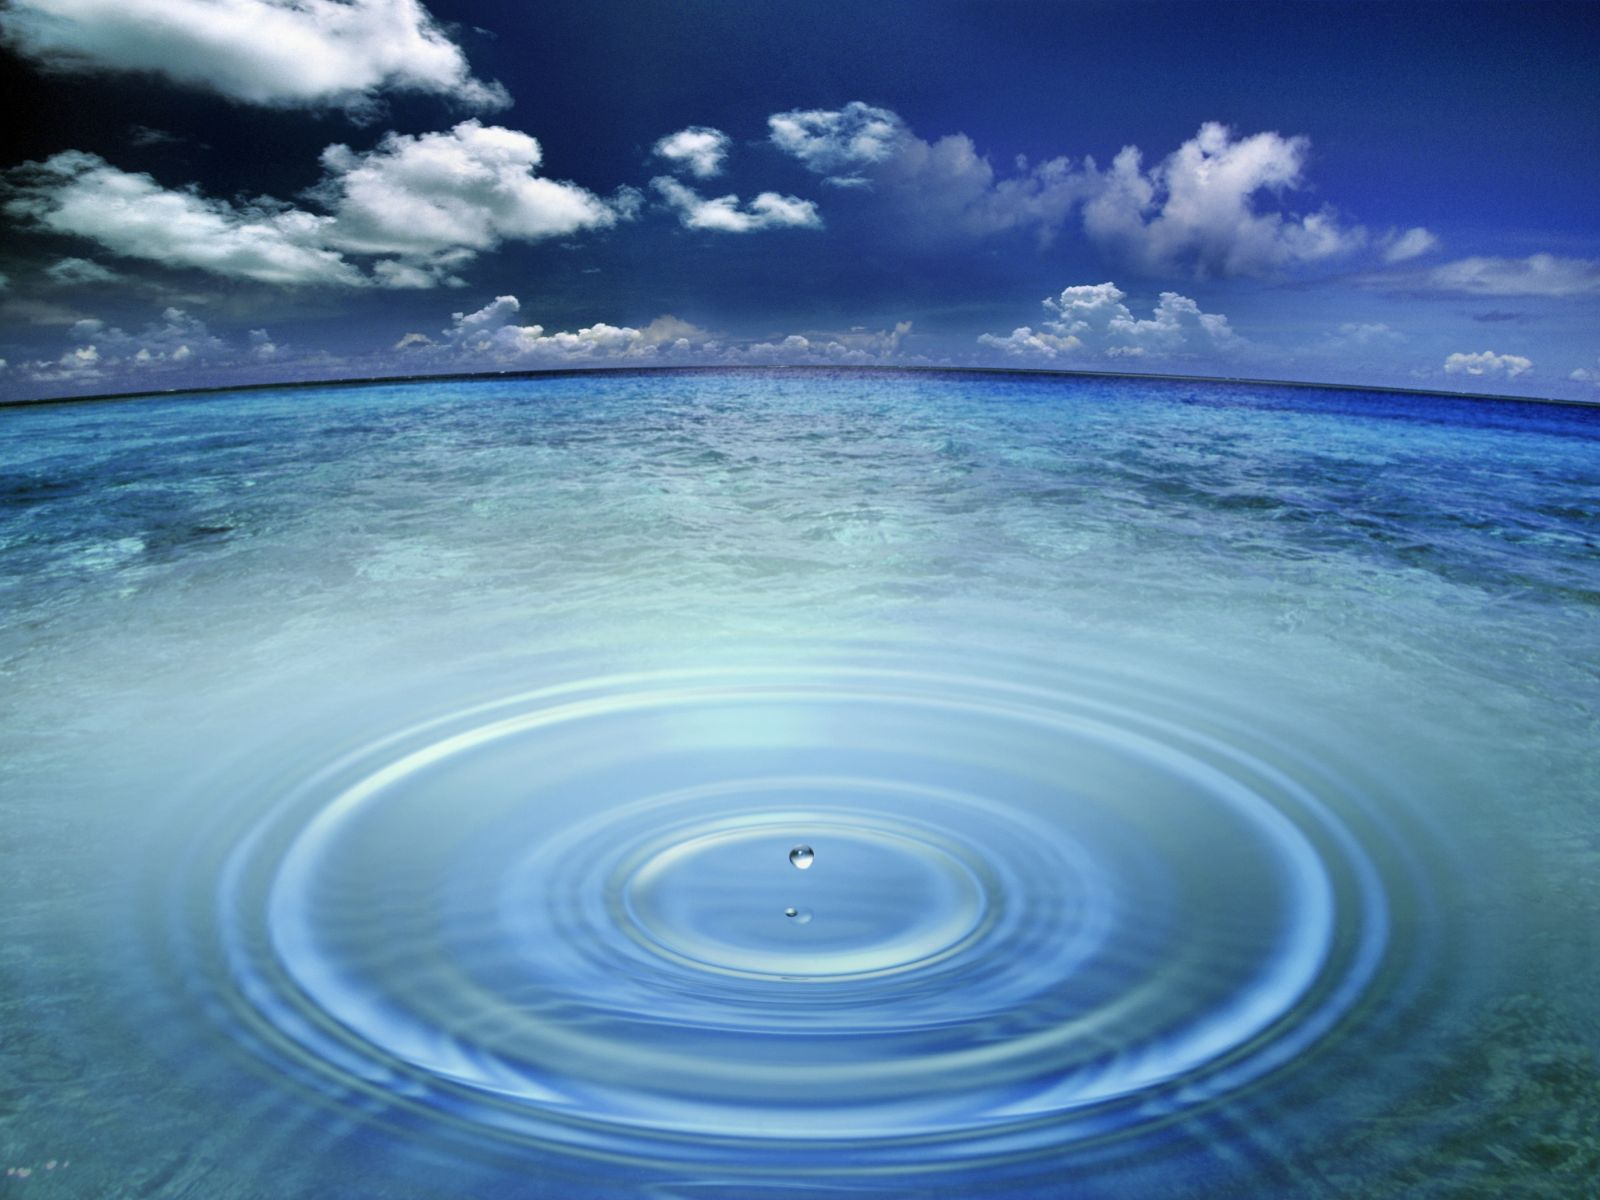 Ocean Water Drop Wallpapers Image 1600x1200